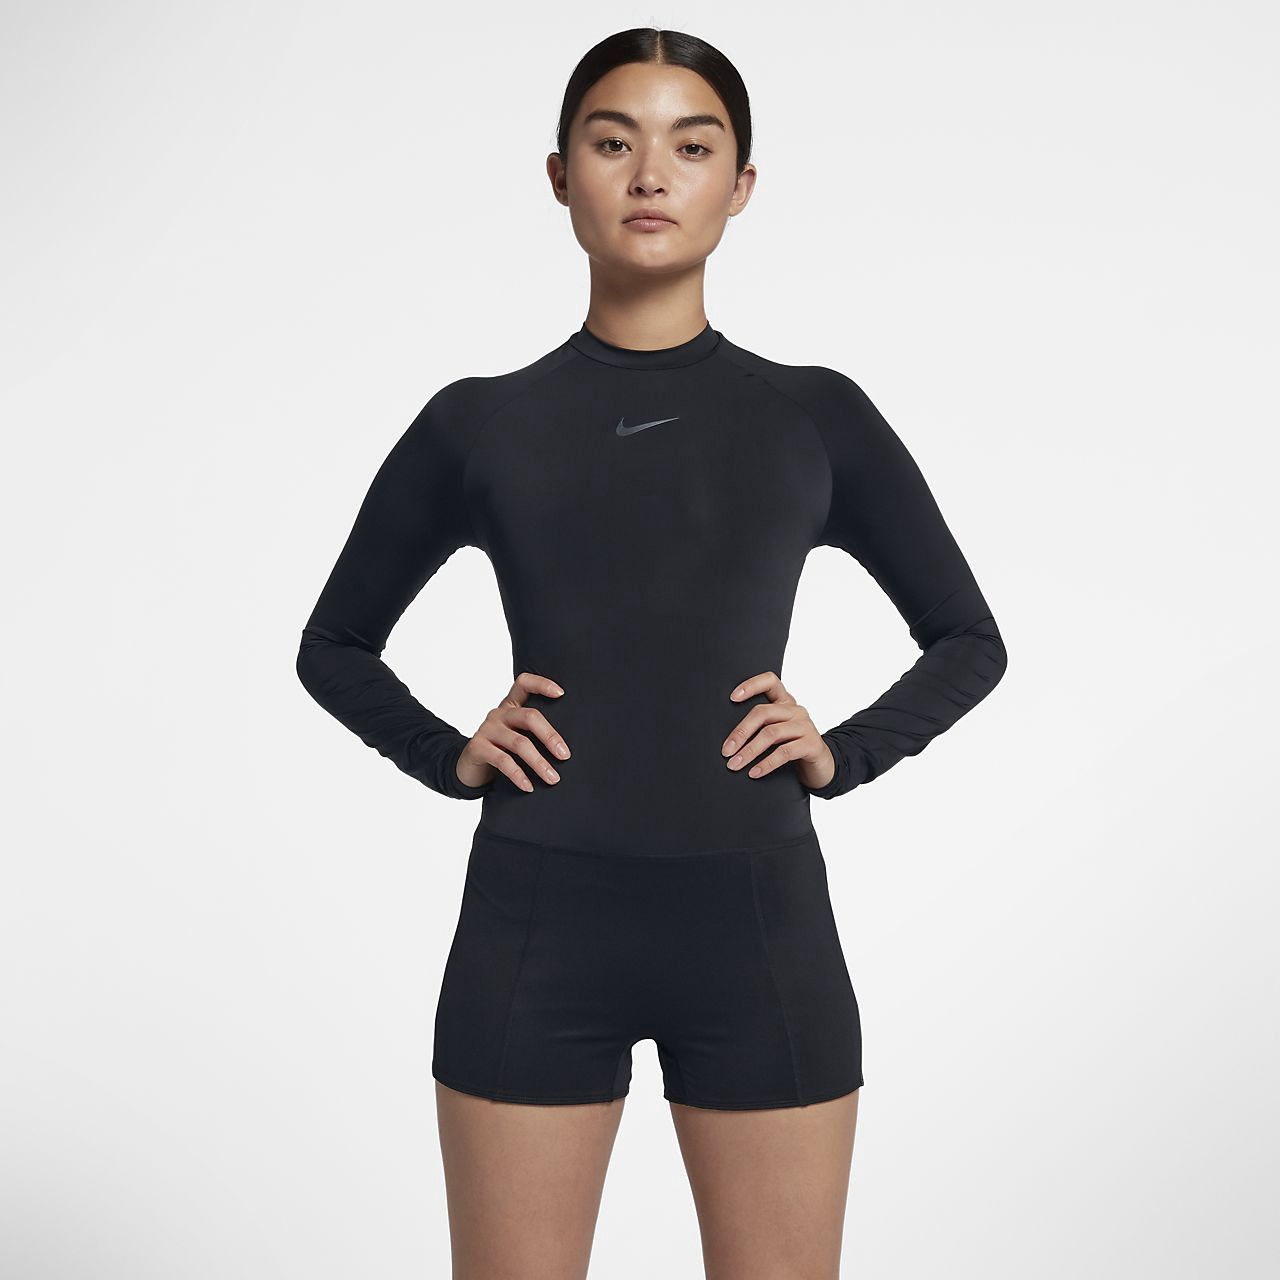 e0f722075b707 Nike Run Division Women's Running Bodysuit - Xs (0–2) | Products ...